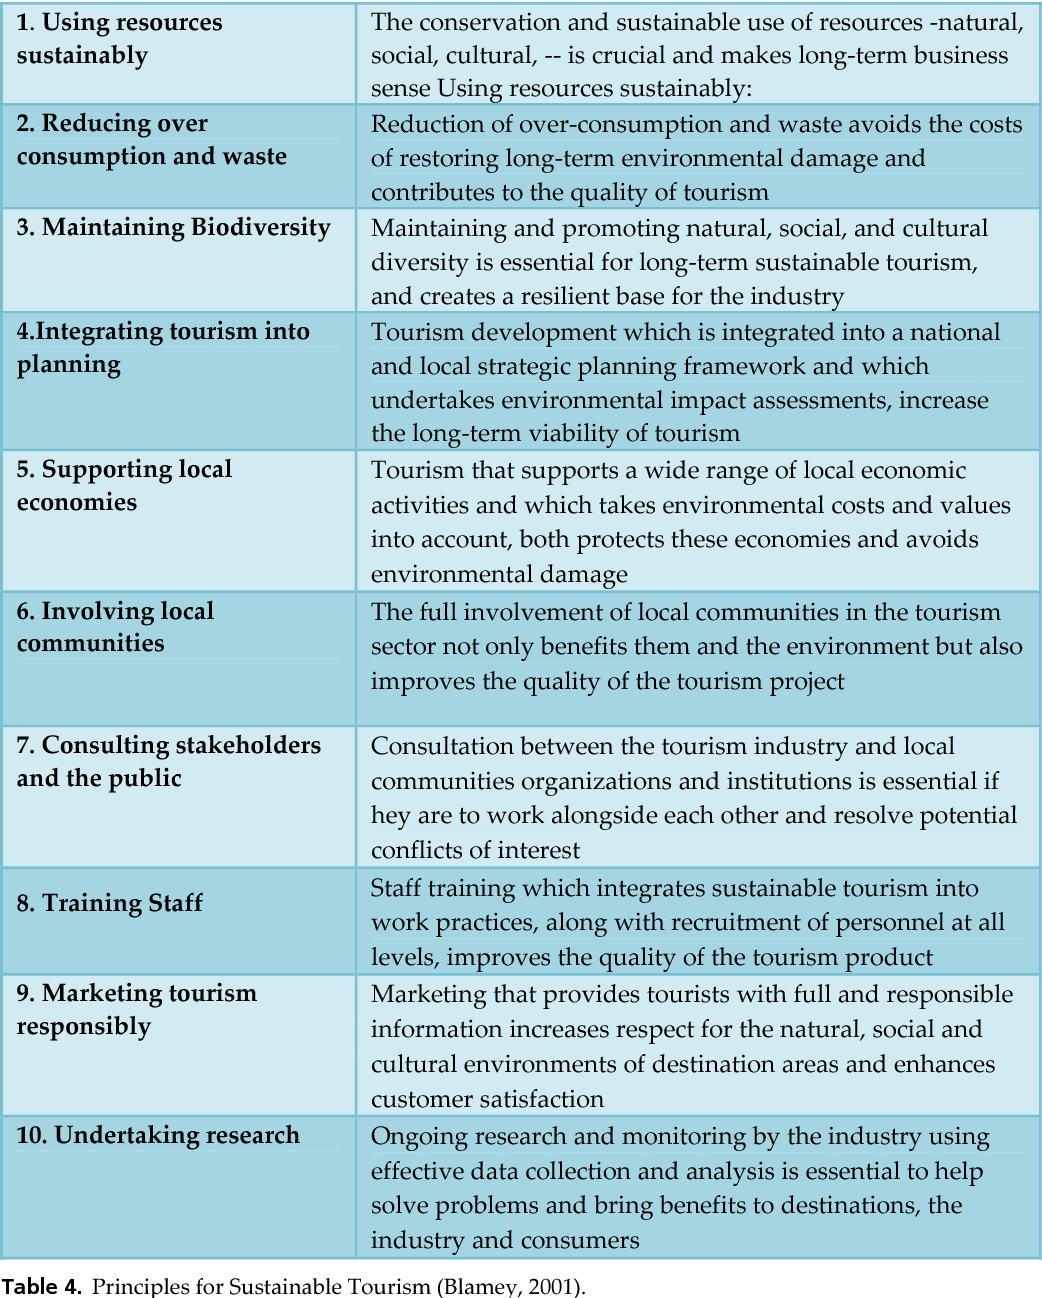 Table 4 from Role of Ecotourism in Sustainable Development